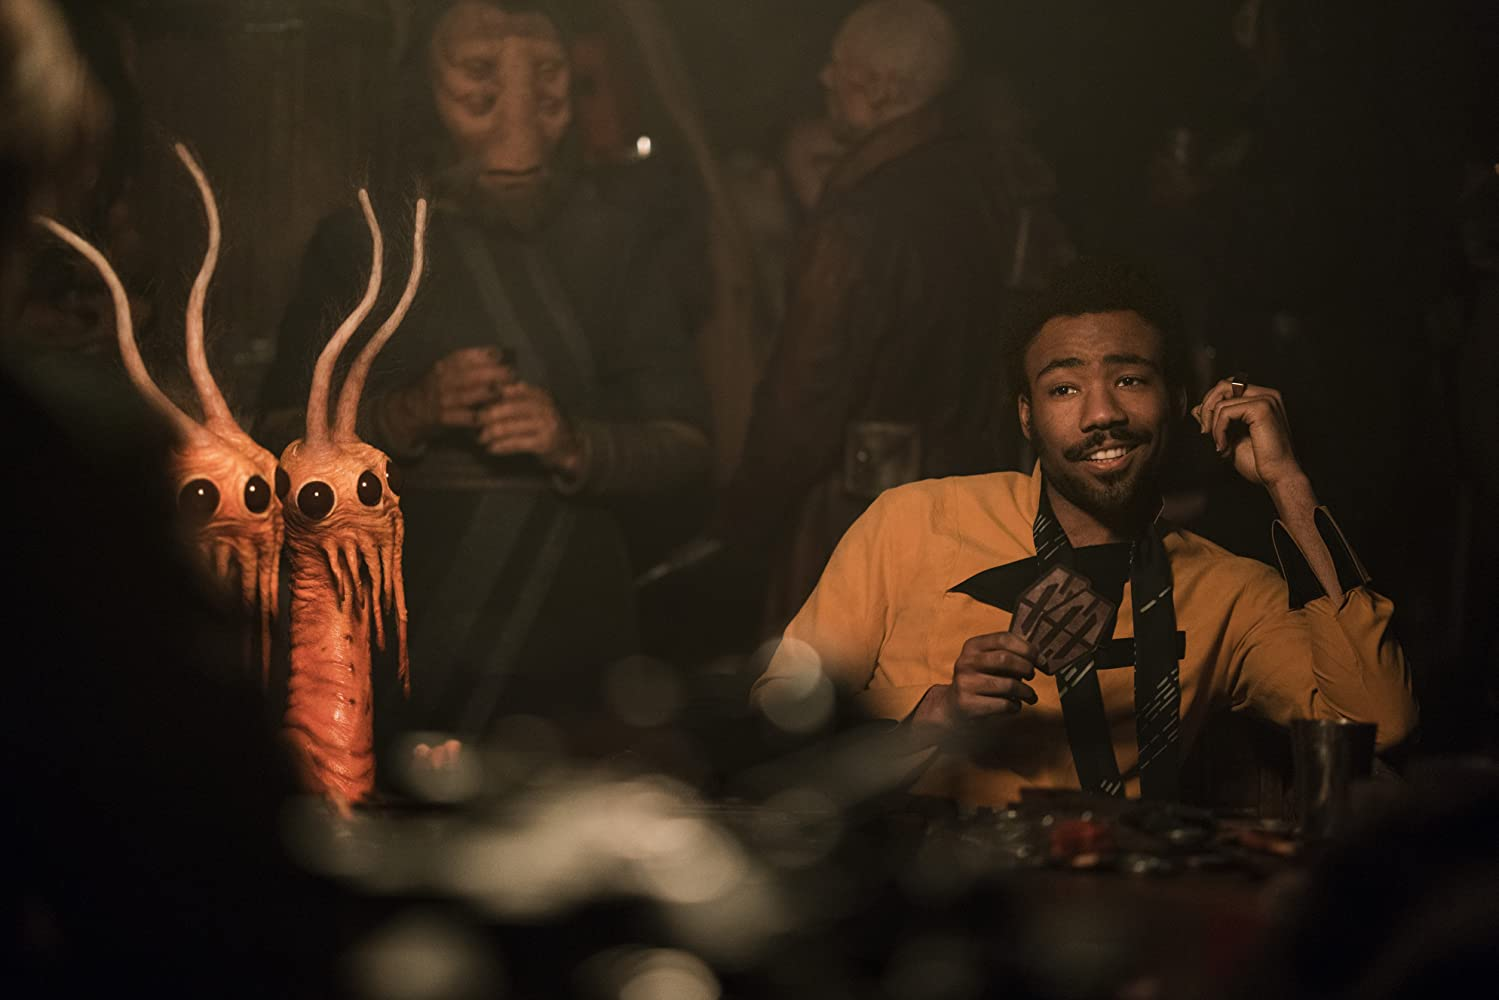 Donald Glover in Solo: A Star Wars Story (2018)